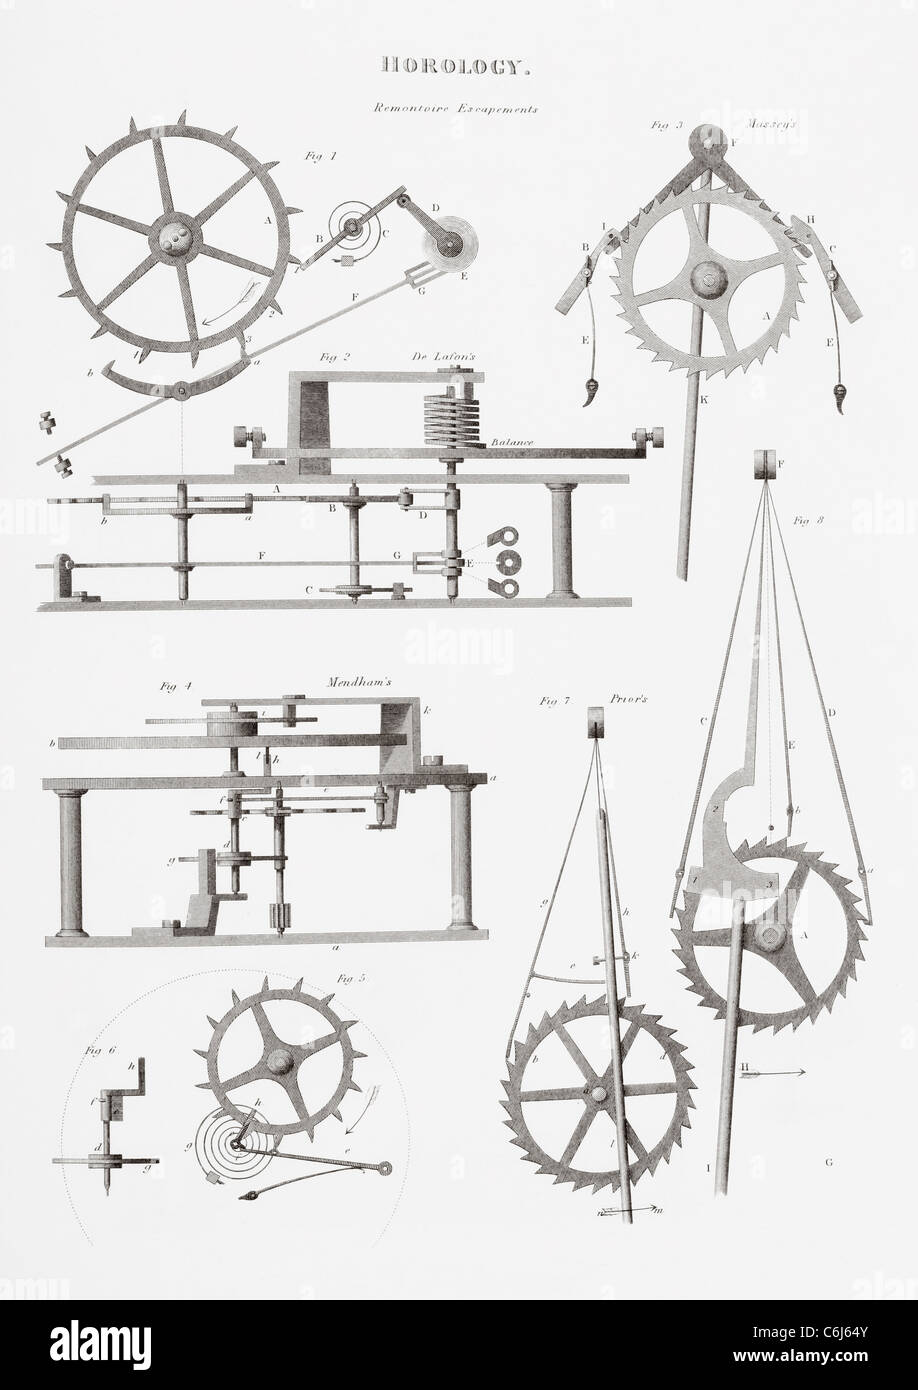 Four different remontoire escapement systems by four different clock makers identified in the picture. - Stock Image